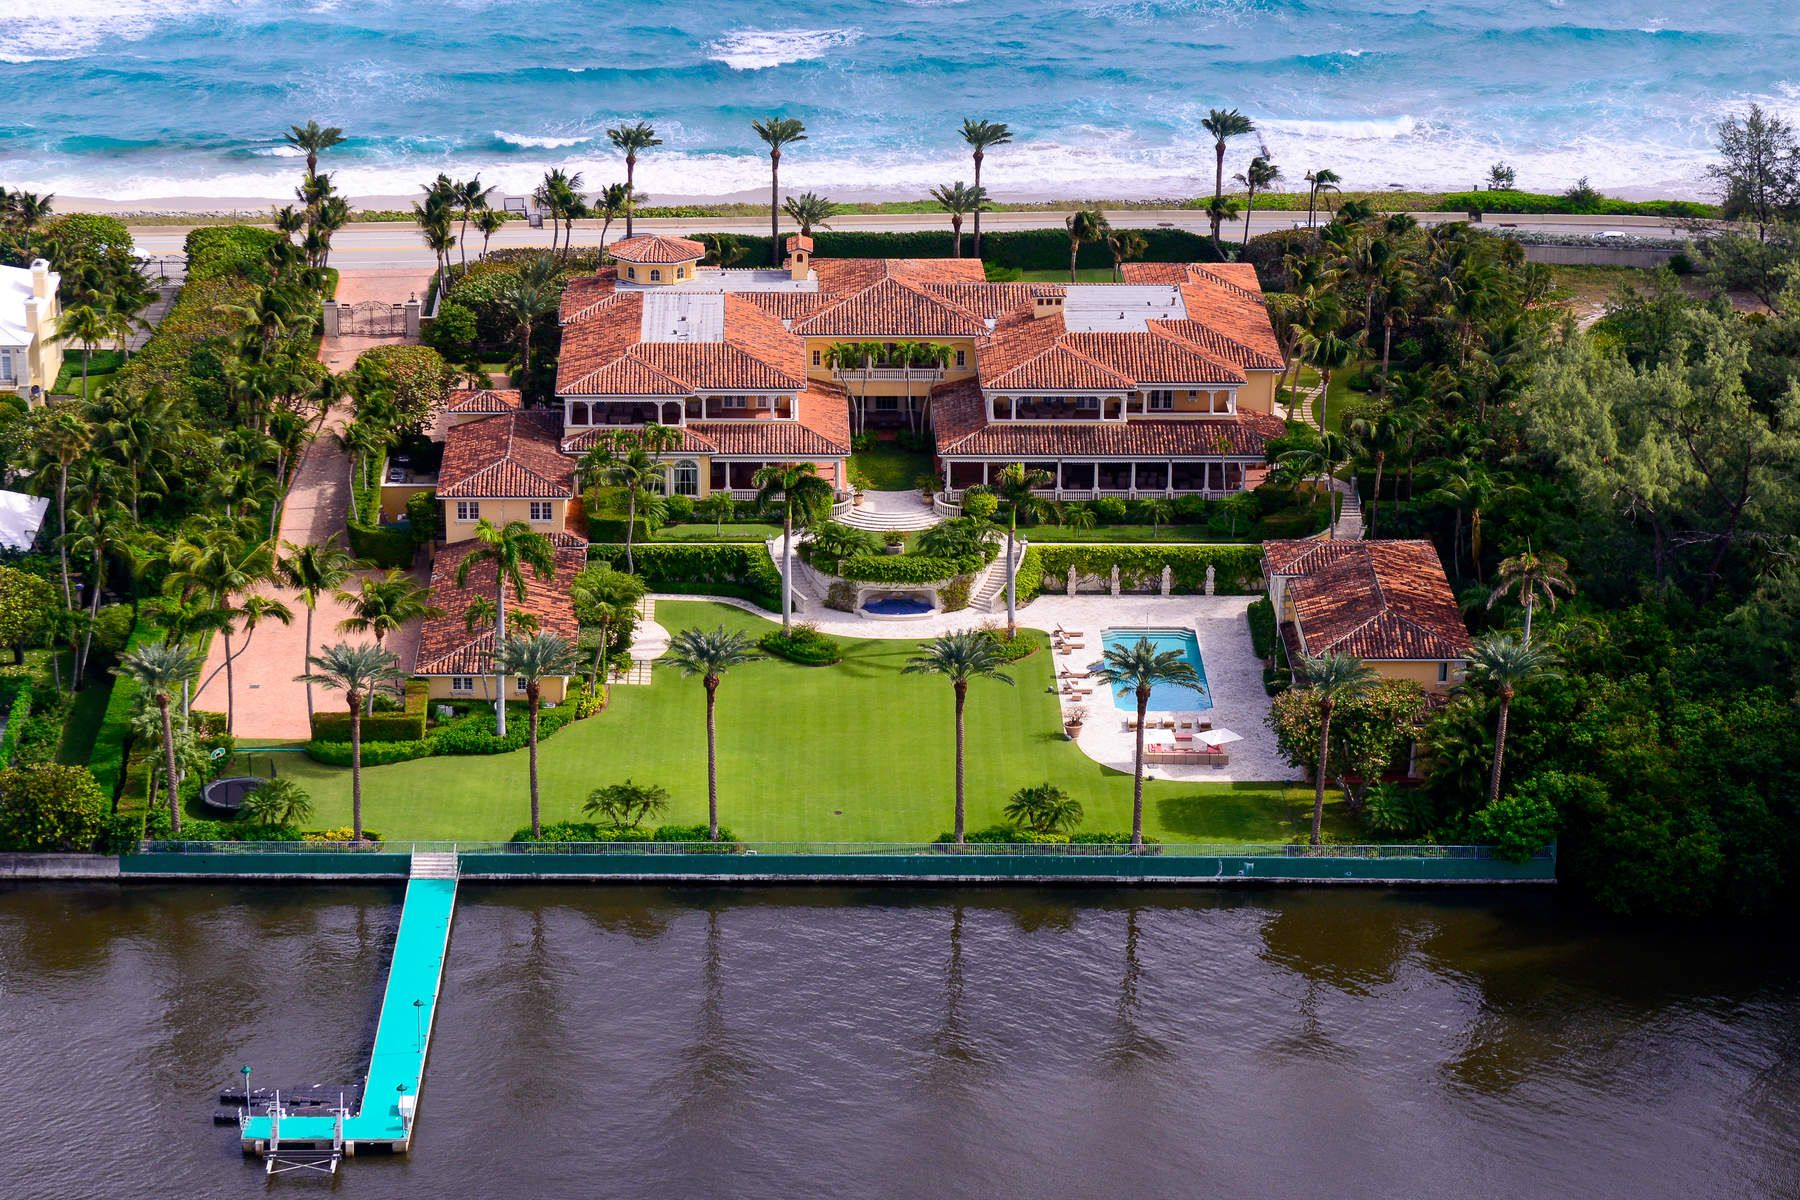 Casa Unifamiliar por un Venta en Magnificent Ocean-to-Lake Mediterranean 1960 S Ocean Blvd Palm Beach, Florida 33480 Estados Unidos